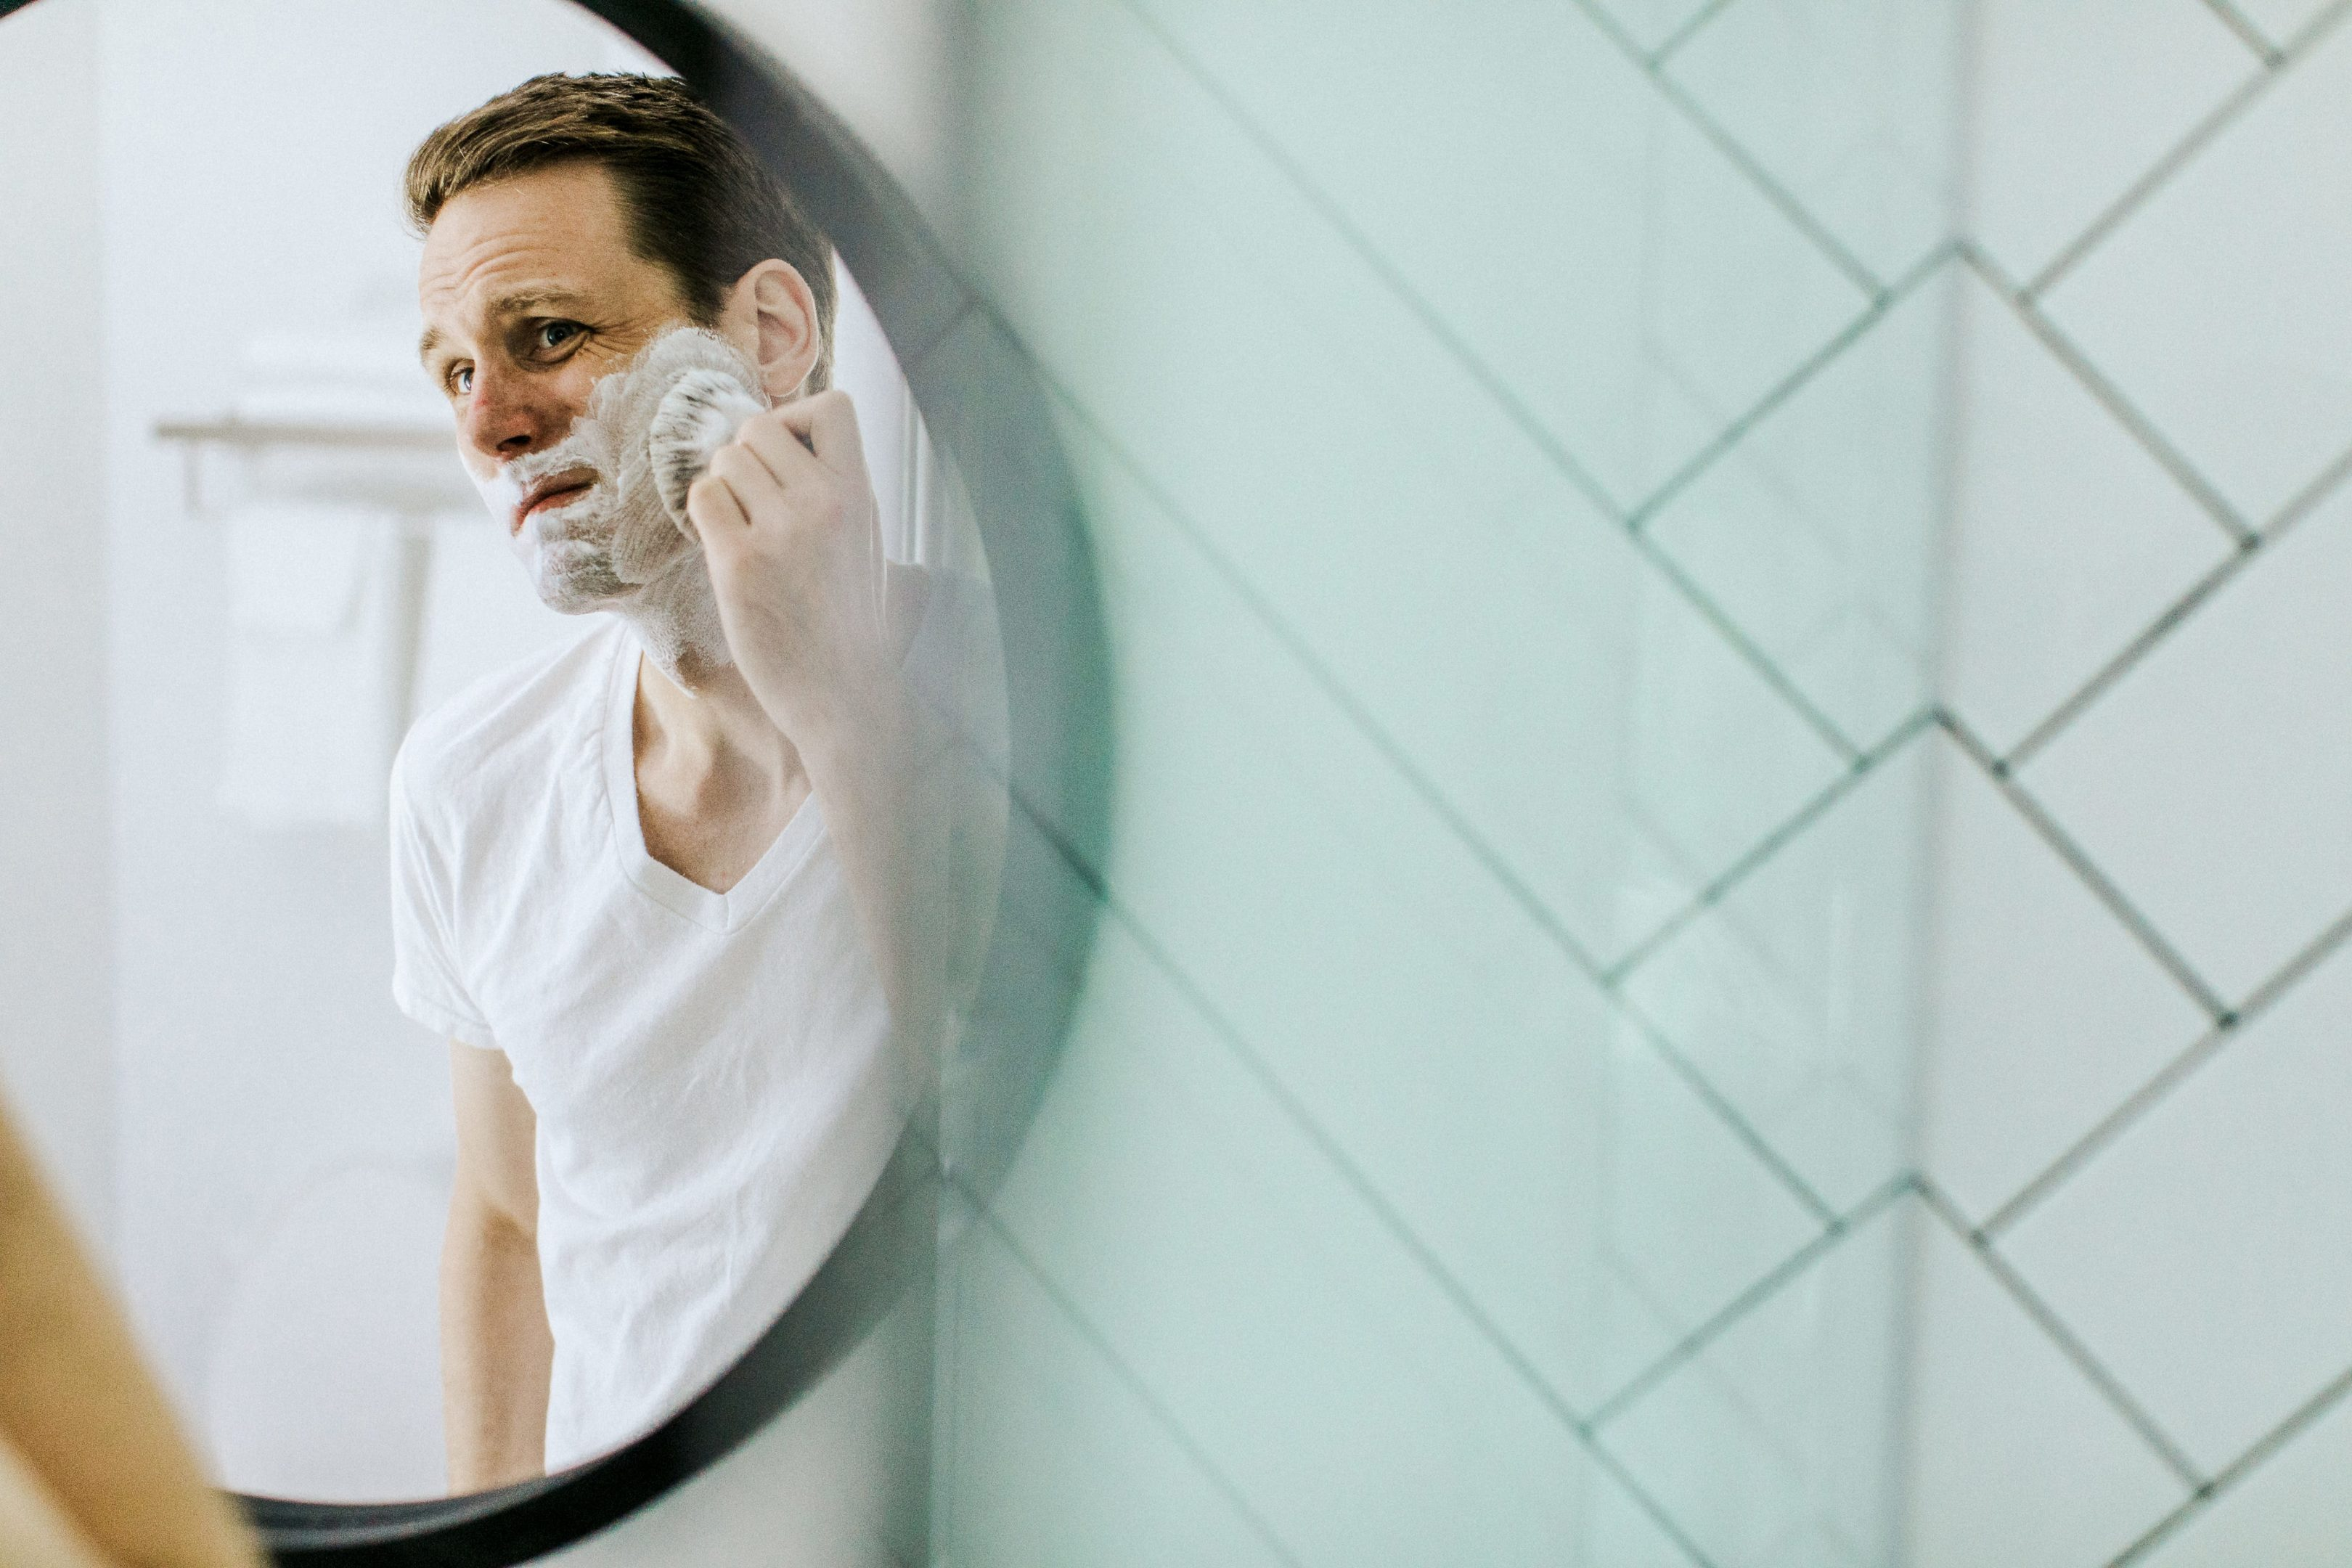 How to Modify Your Shaving Routine to Prevent Bumps